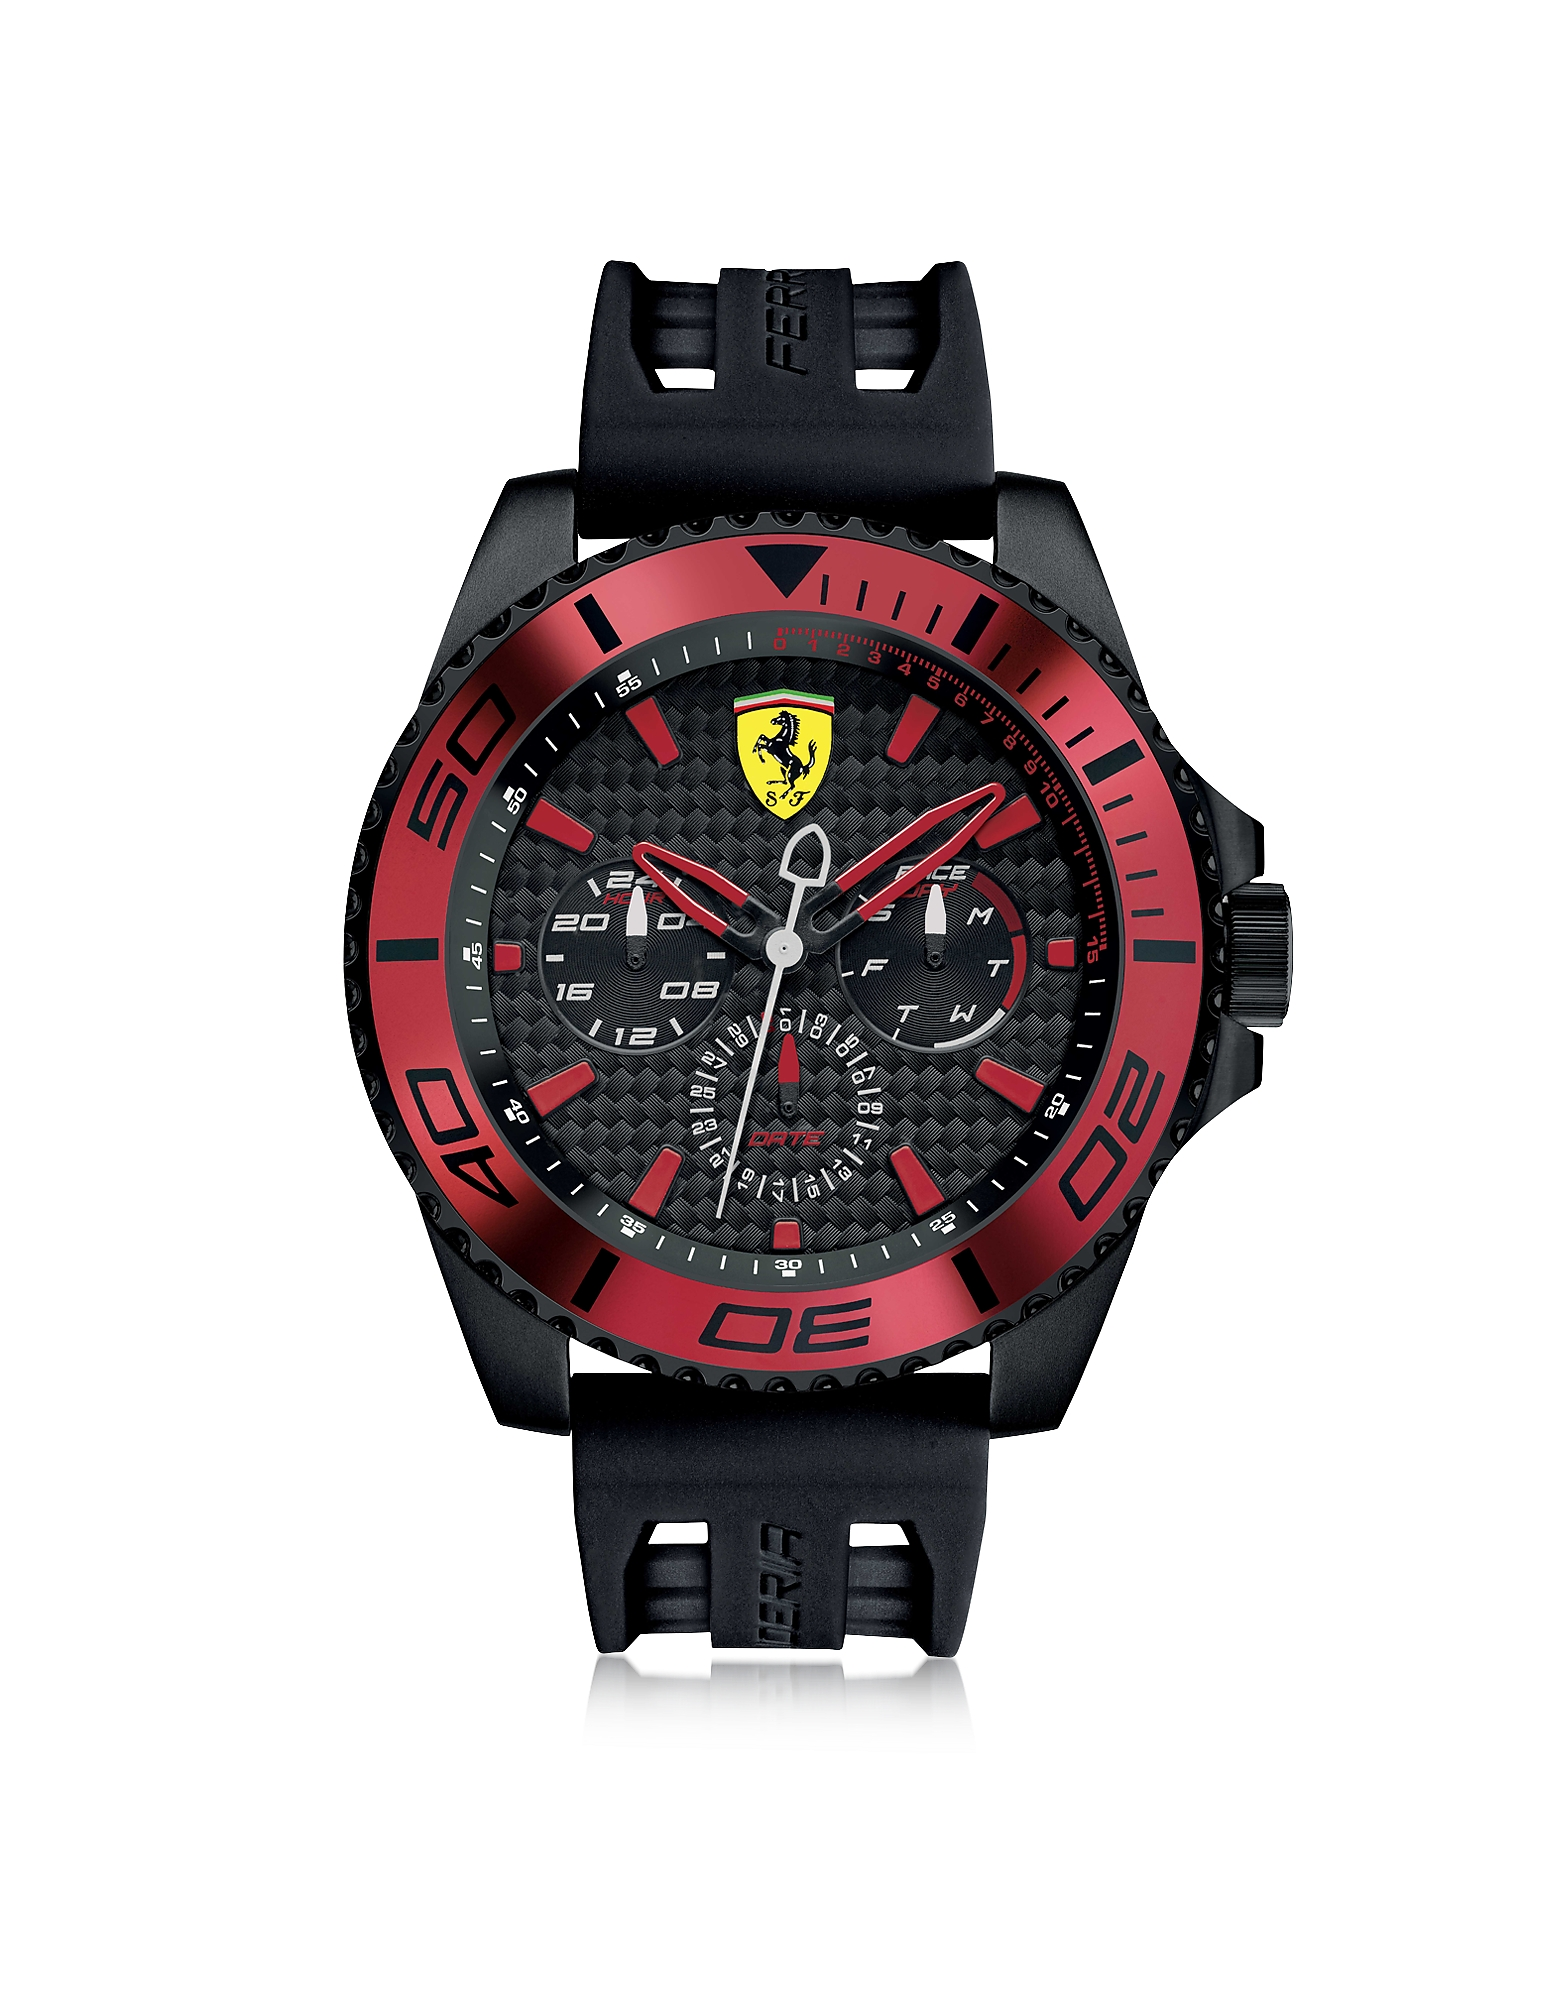 Ferrari Men's Watches, XX Kers Black and Red Stainless Steel Men's Watch